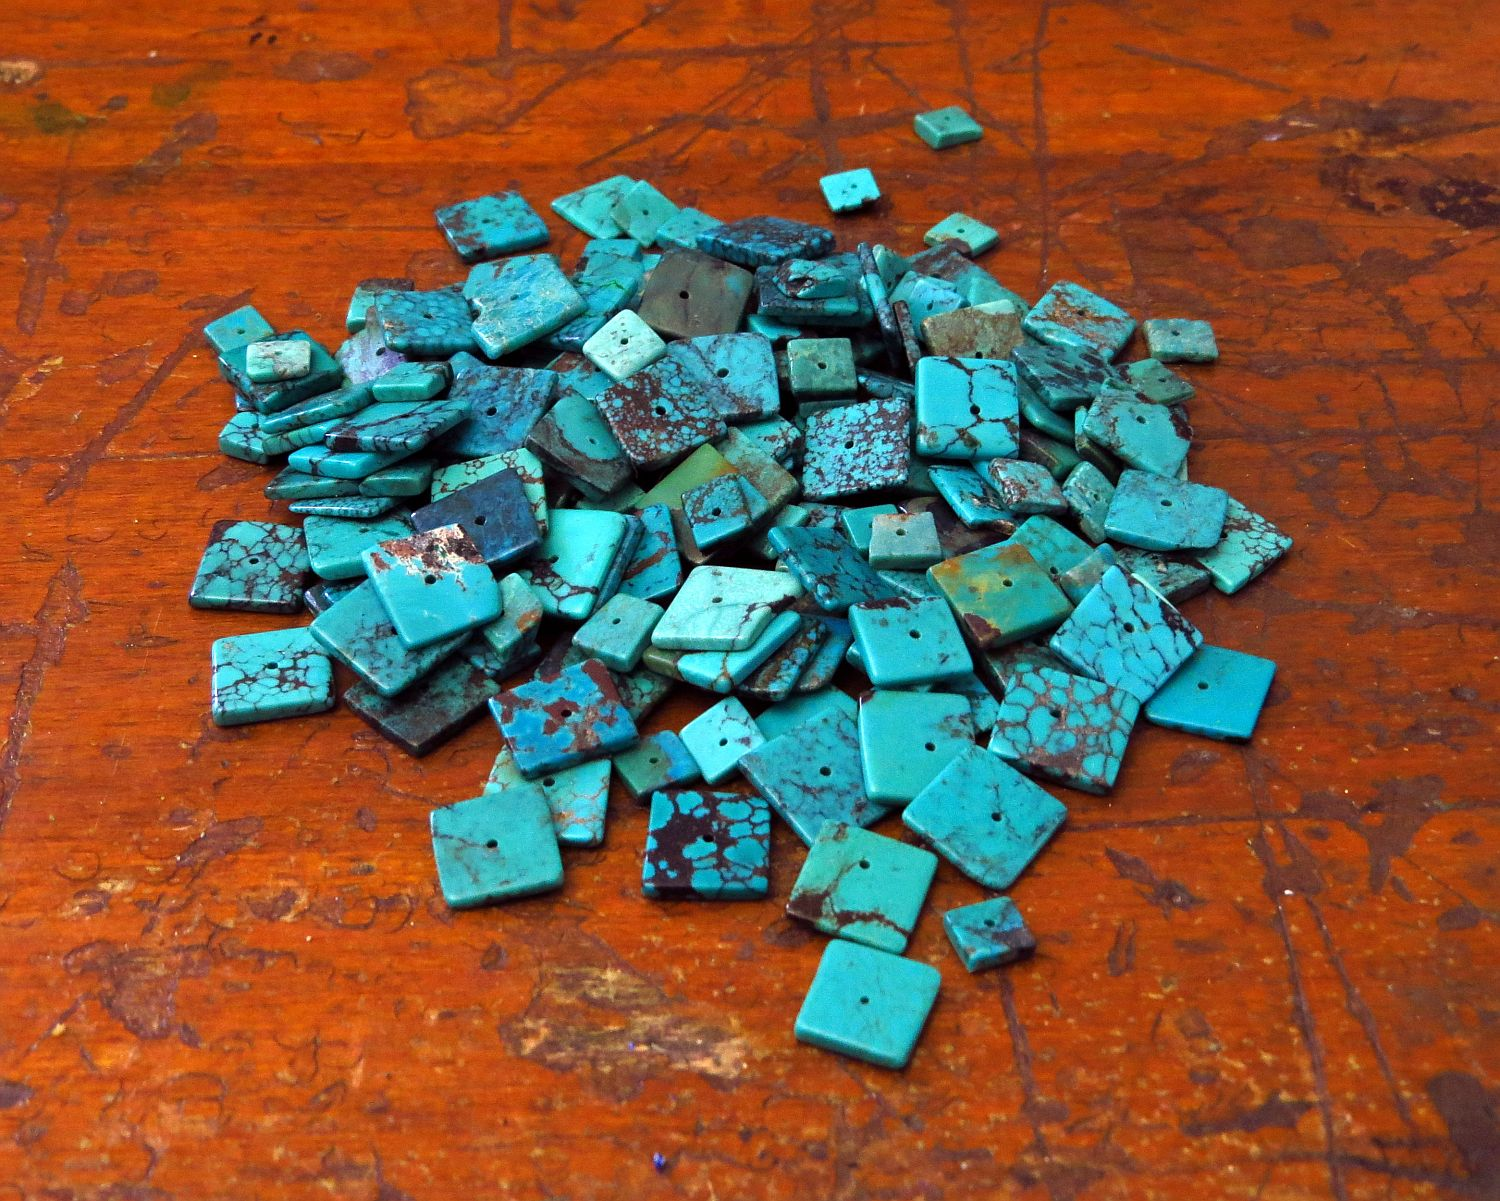 I've had these Chinese turquoise cubes for ages ... really would like to do something with them